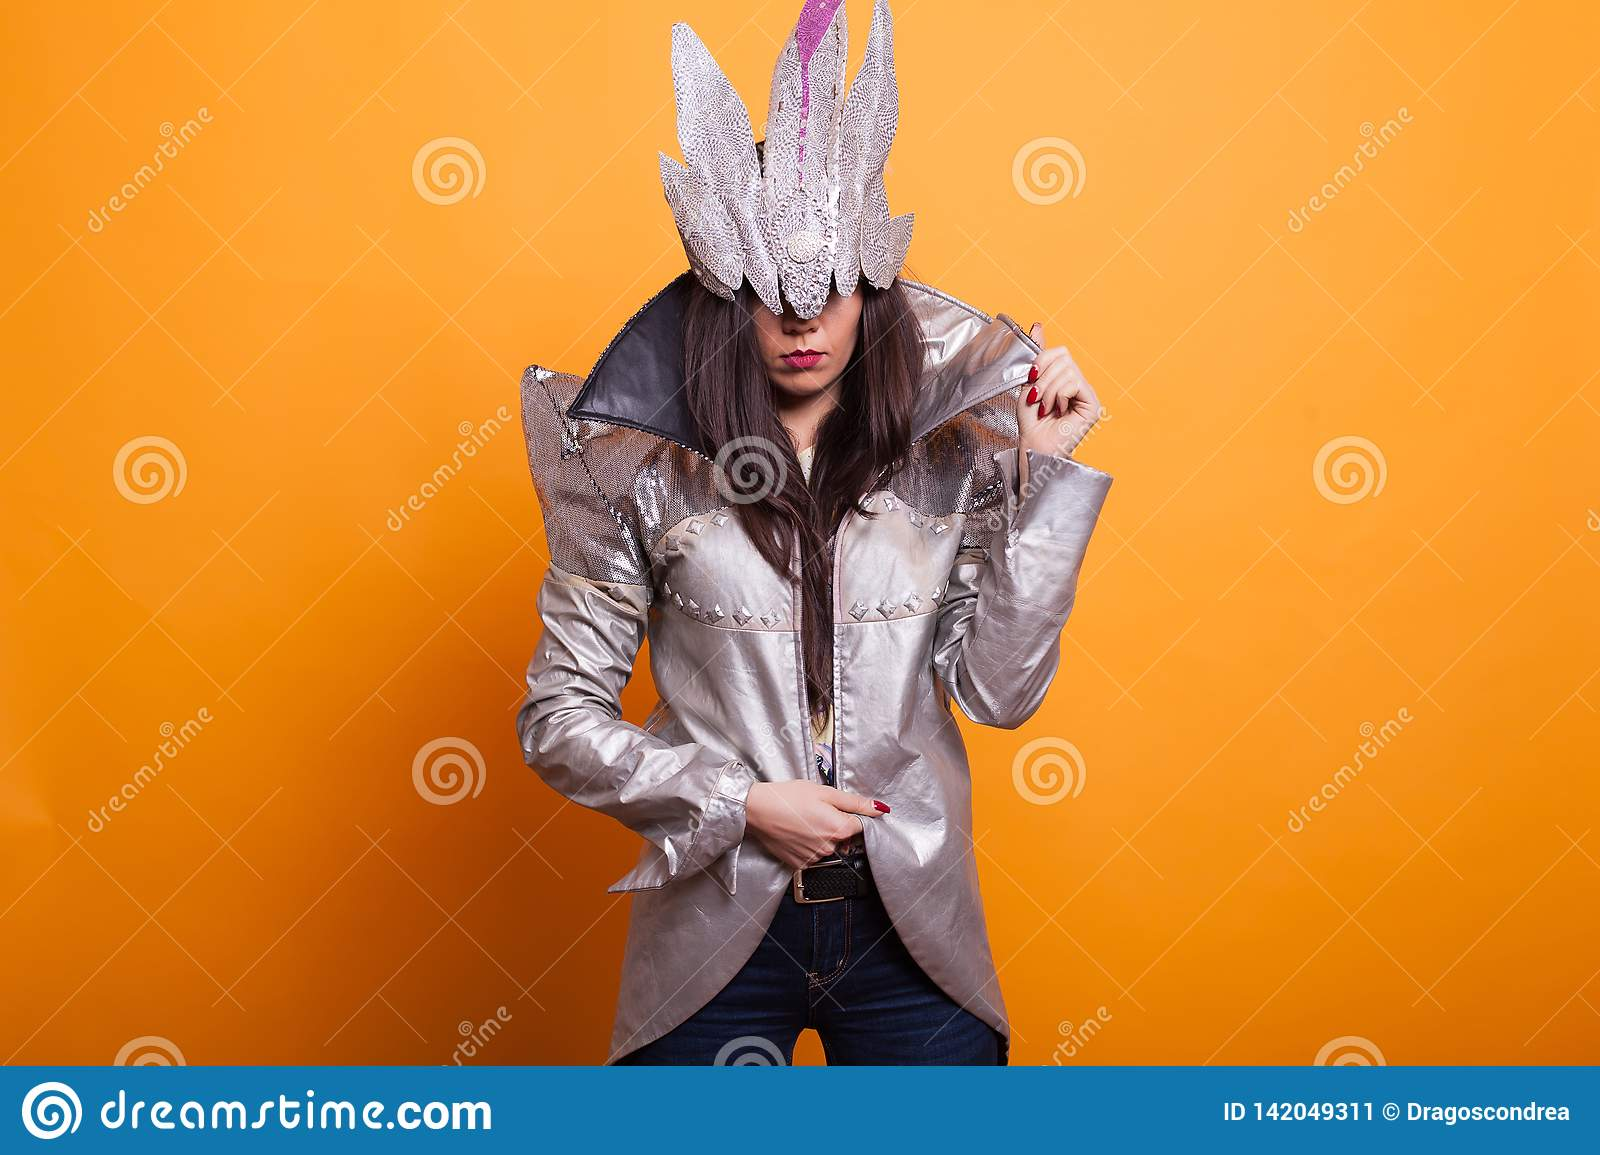 Young woman dressed in spooky halloween costume over yellow background